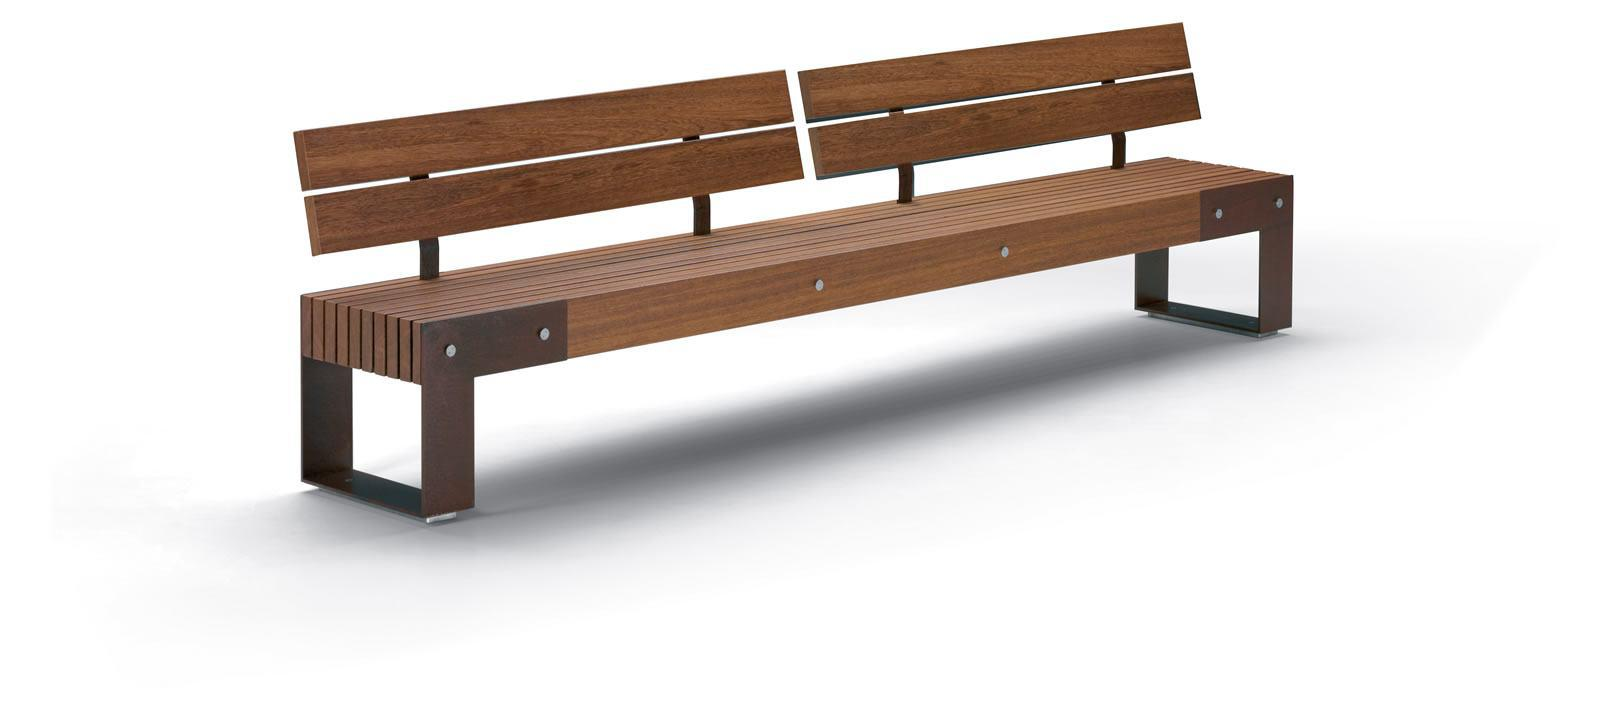 Ideas For Benches Part - 23: Ideas-003